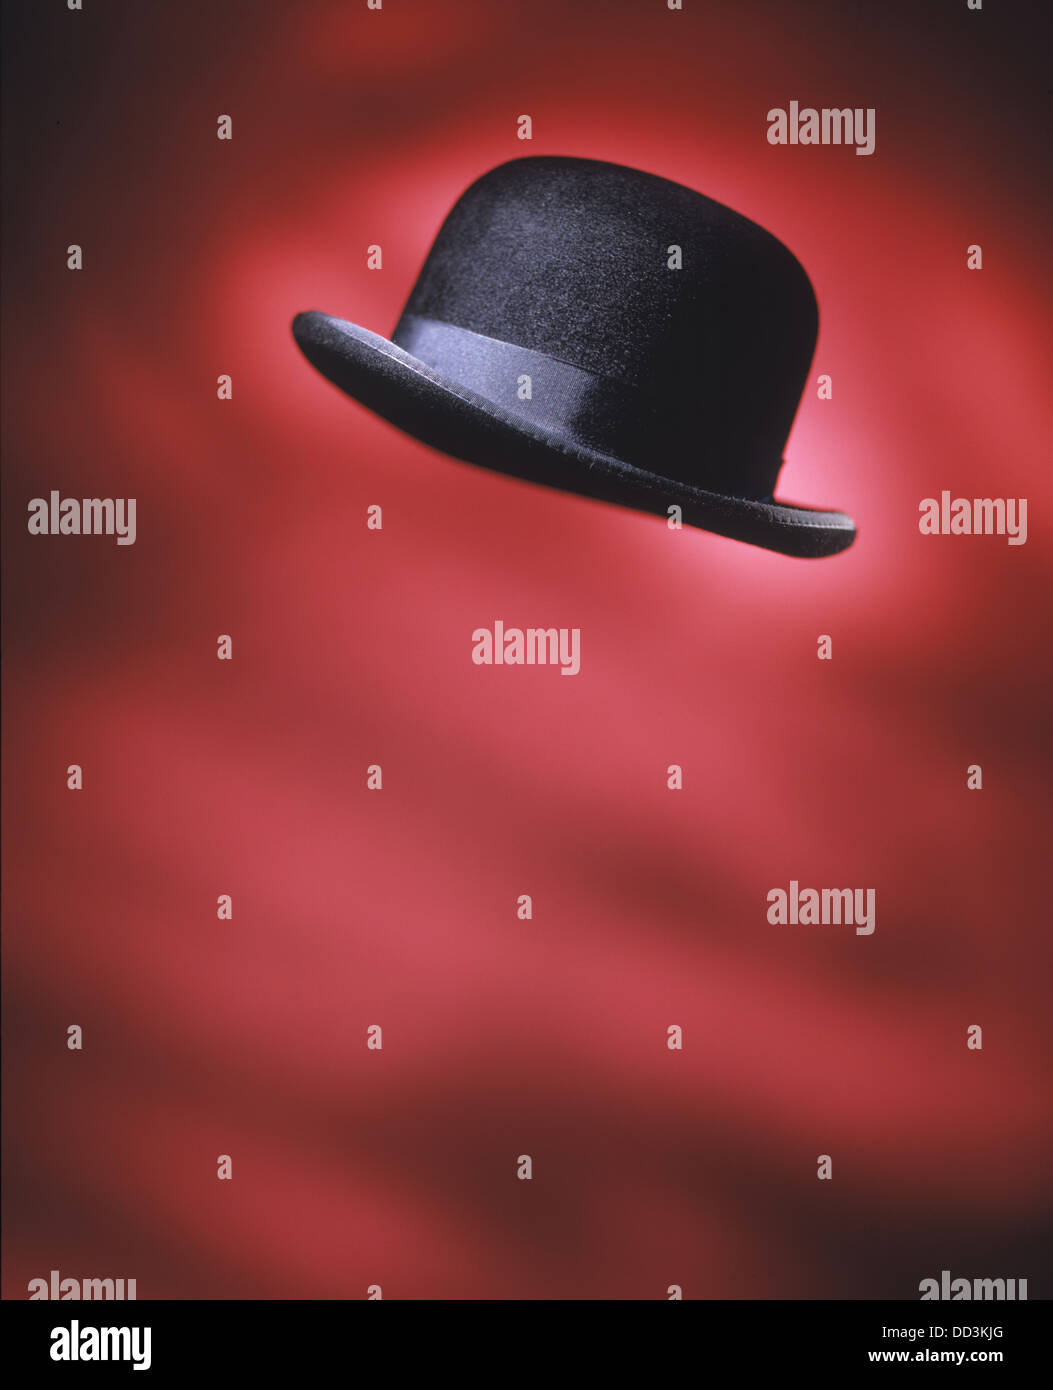 Un derby hat mens noir volant dans l'air. Fond rouge brillant Photo Stock